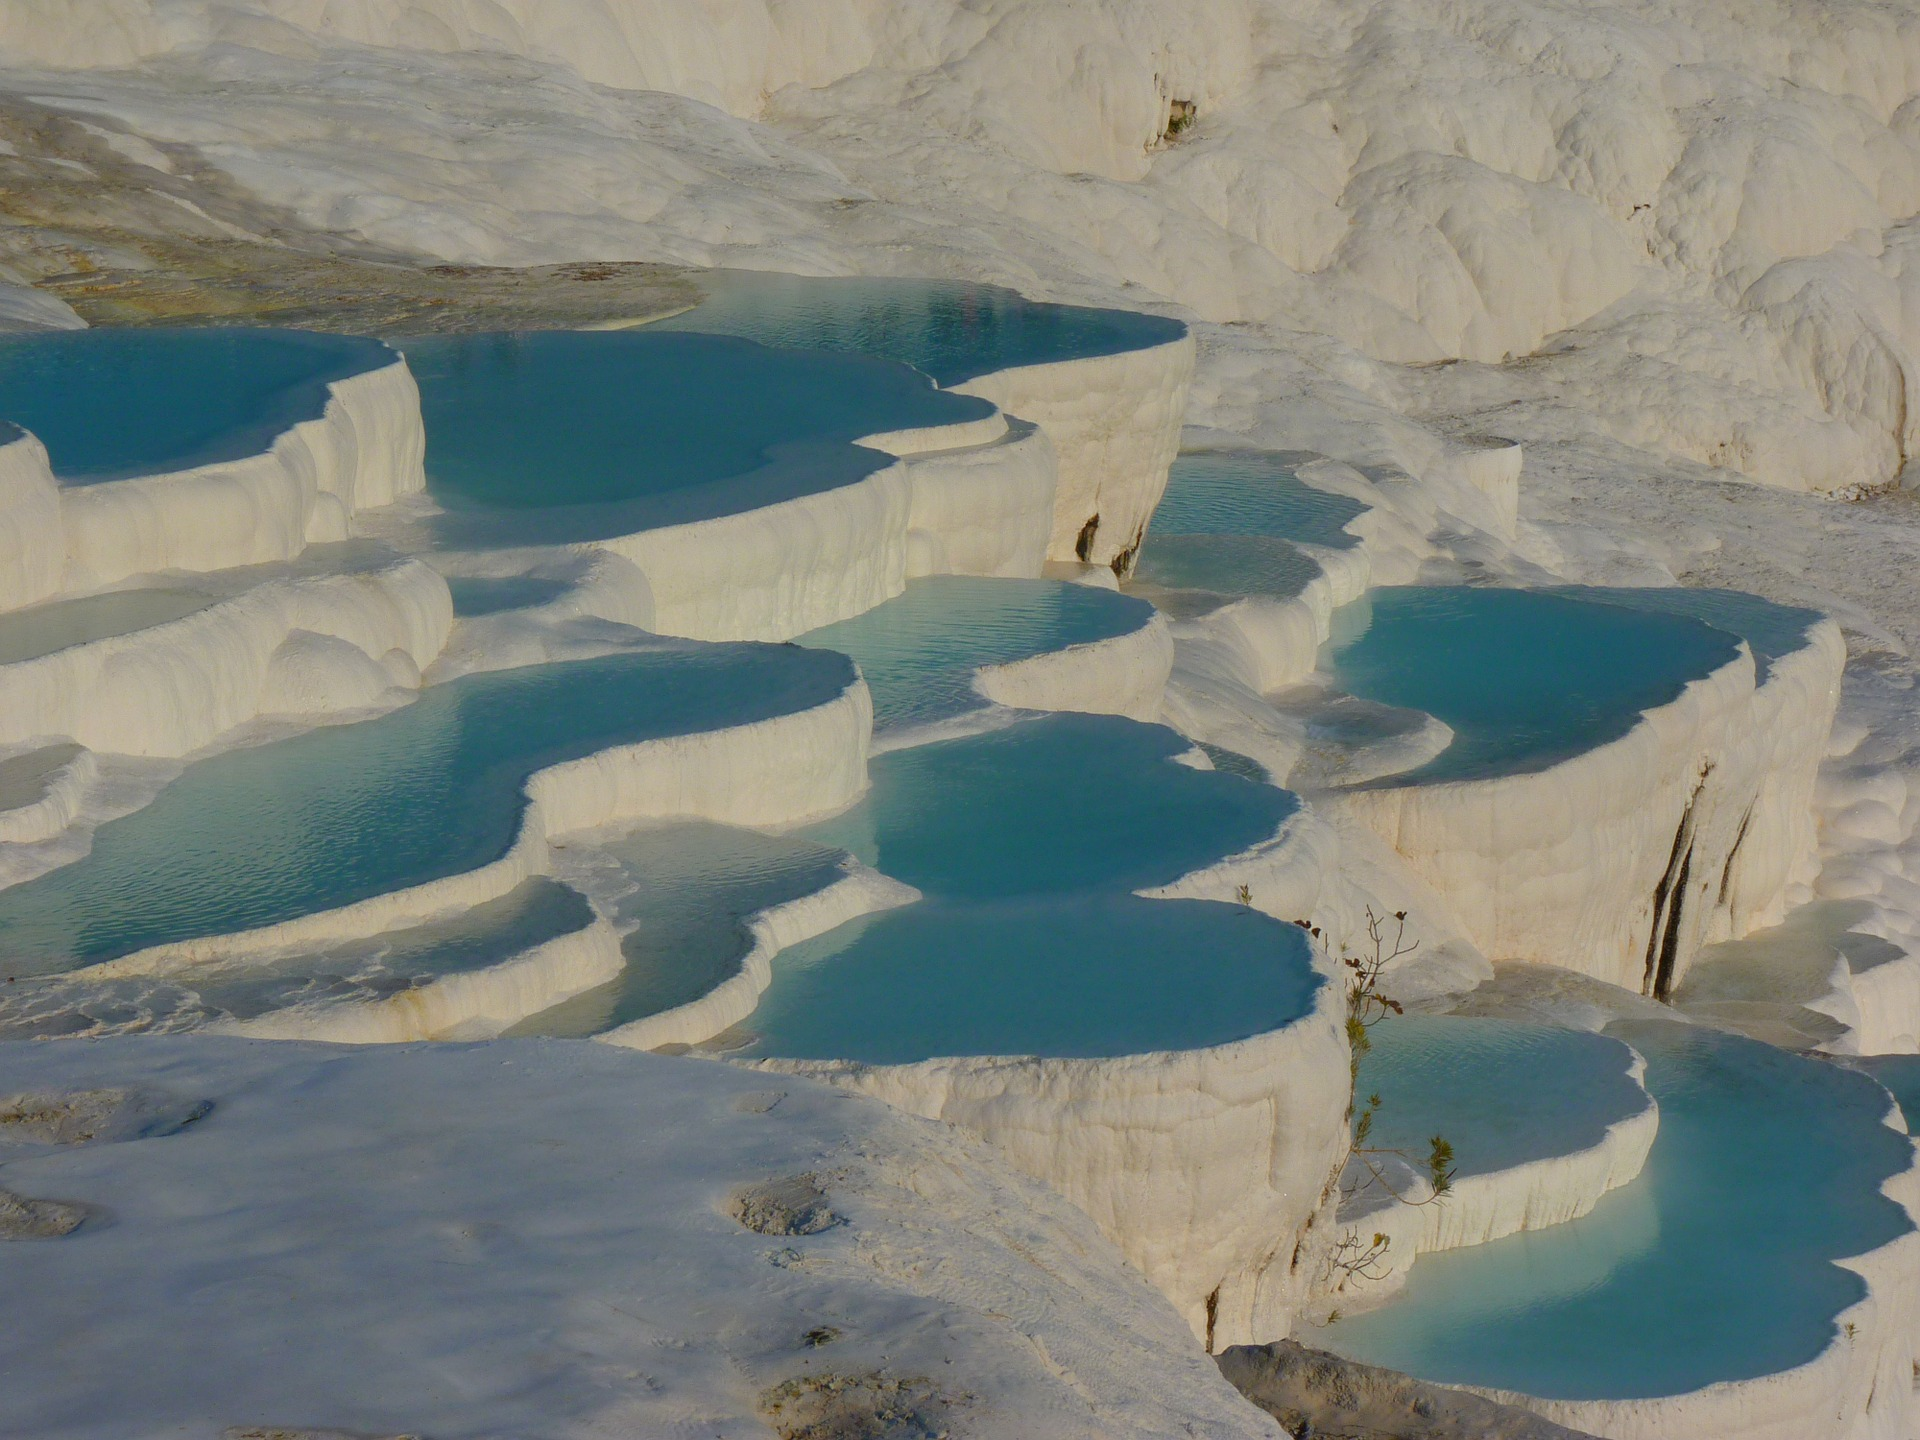 The pools of Pamukkale, Turkey